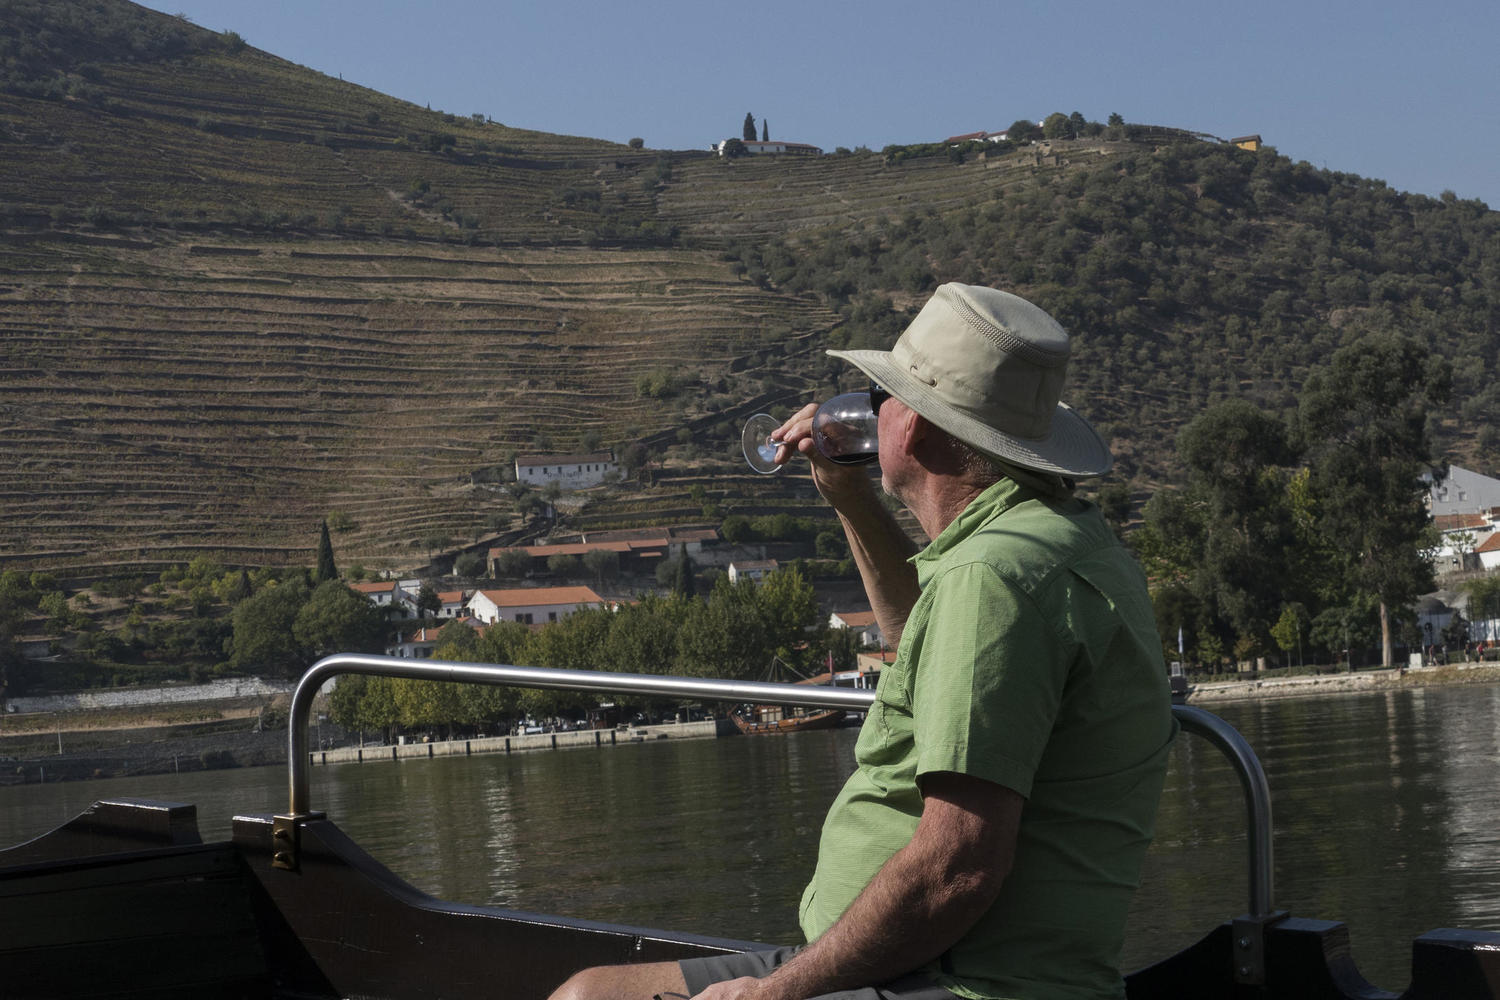 Enjoying a boat ride on the Douro